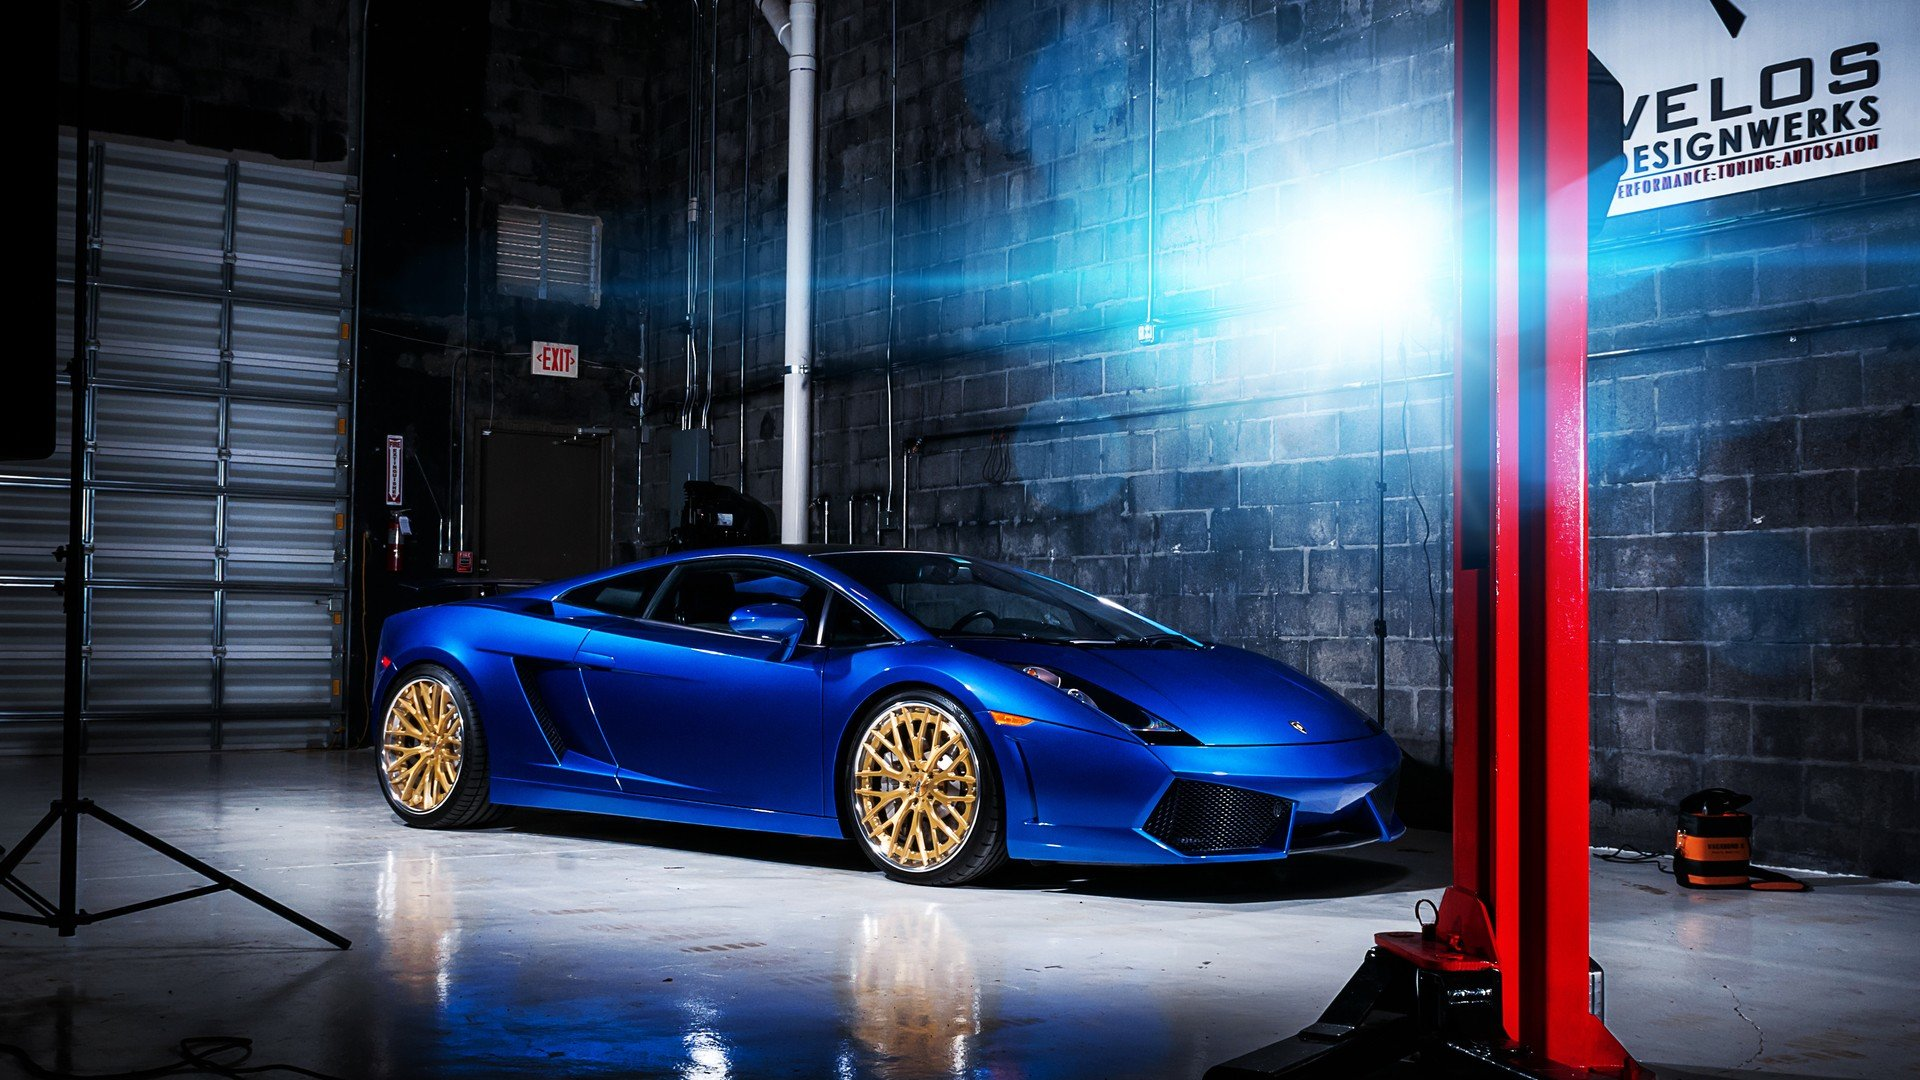 Best Sports Car Wallpaper ID:284818 For High Resolution Hd 1080p Computer